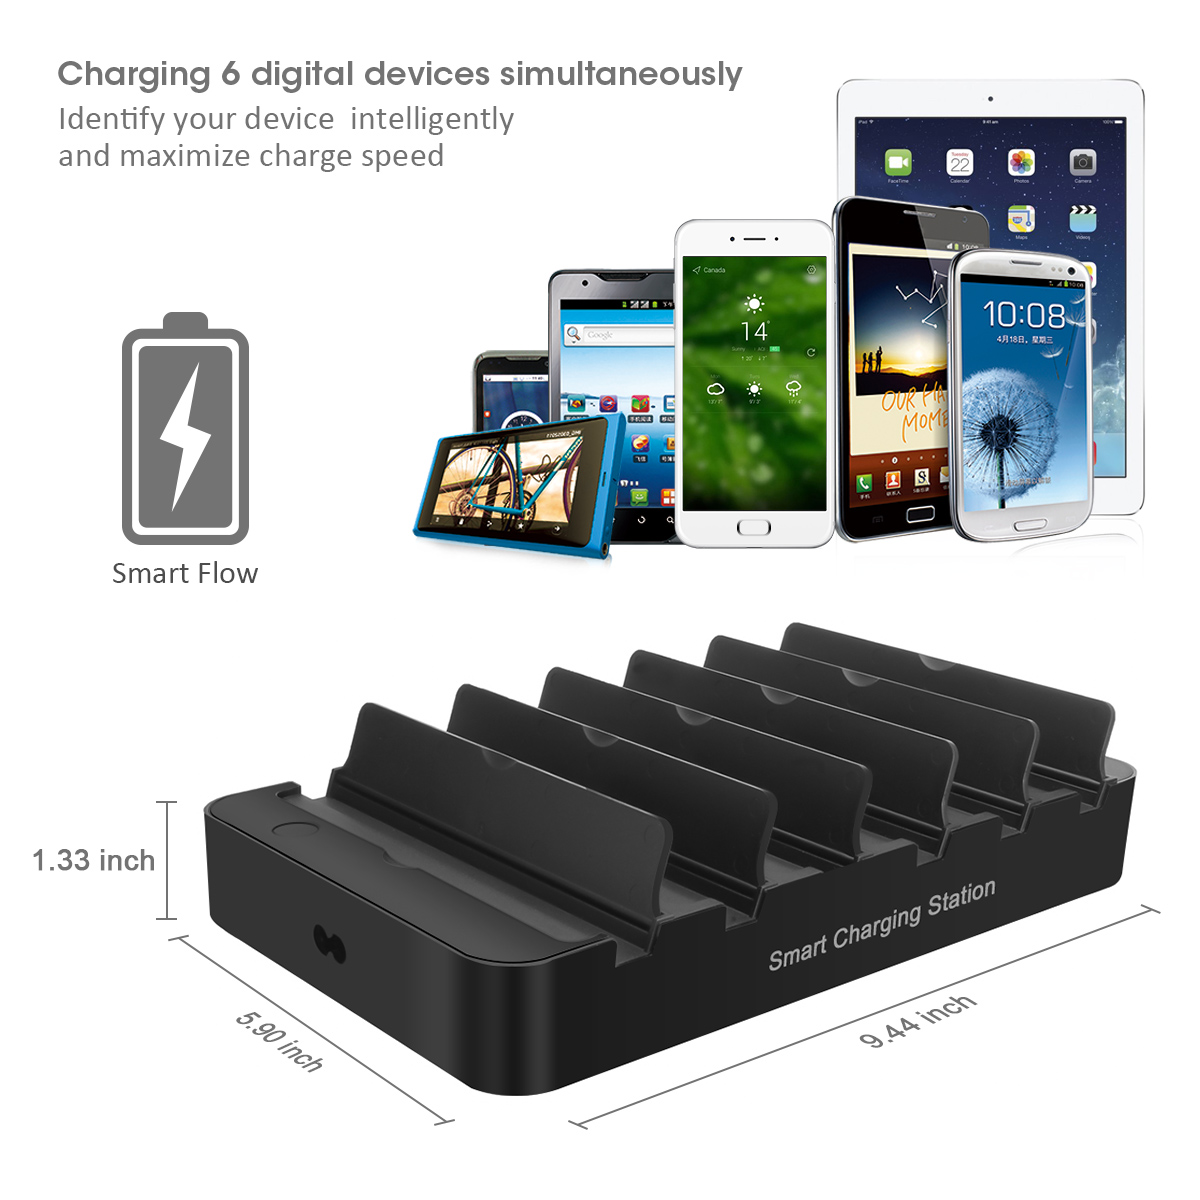 6-Port 60W USB Charger with QC 3.0 Smart IC Tech Fast Charger for iPhone 8/7/6s/Plus Samsung Xiaomi